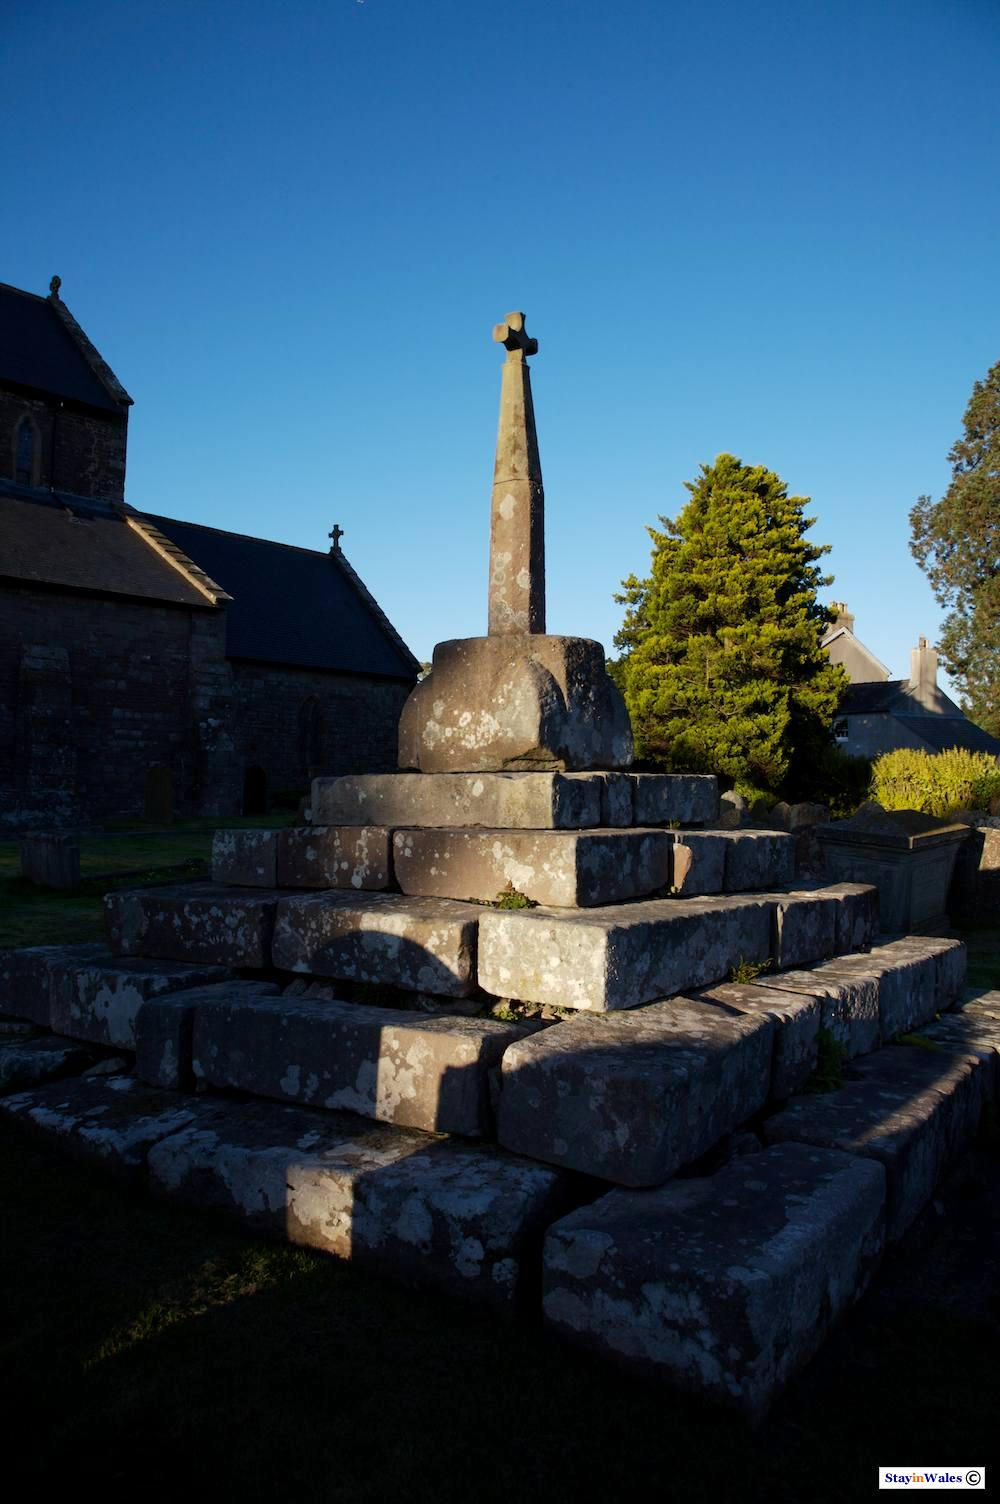 Preaching Cross at Trellech, Monmouthshire